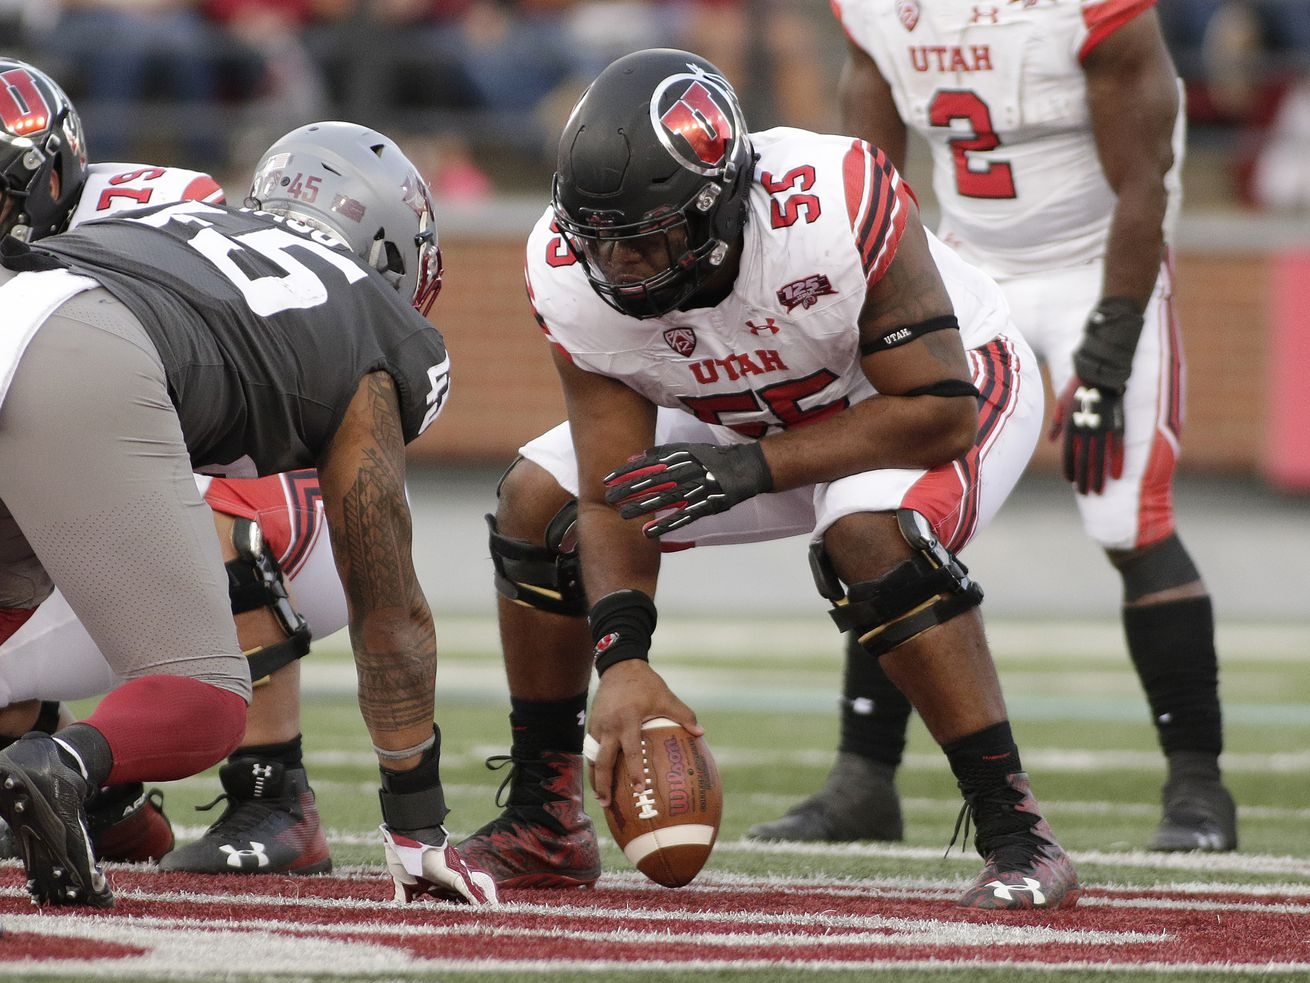 Versatile Nick Ford is now the center of attention on Utah's offensive line